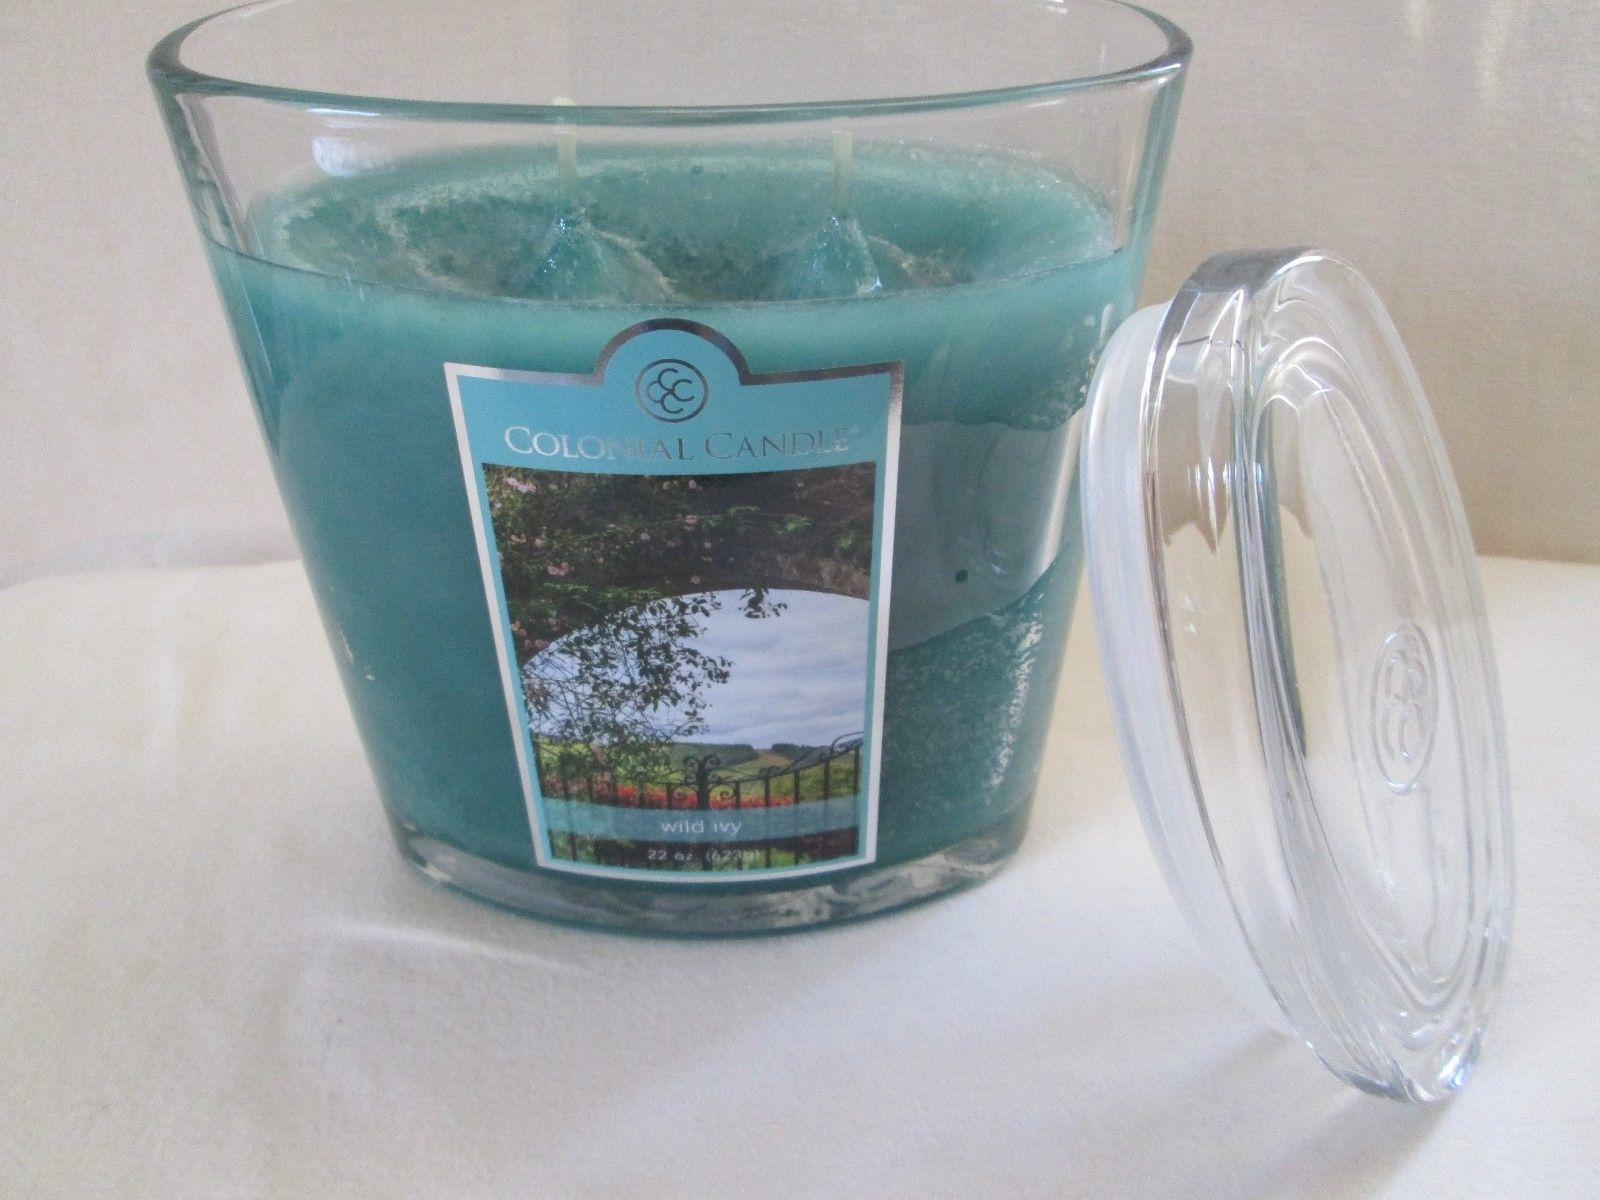 NEW /& RETIRED CHOICES COLONIAL CANDLE Large 22 oz 2-Wick Oval Jar CANDLES